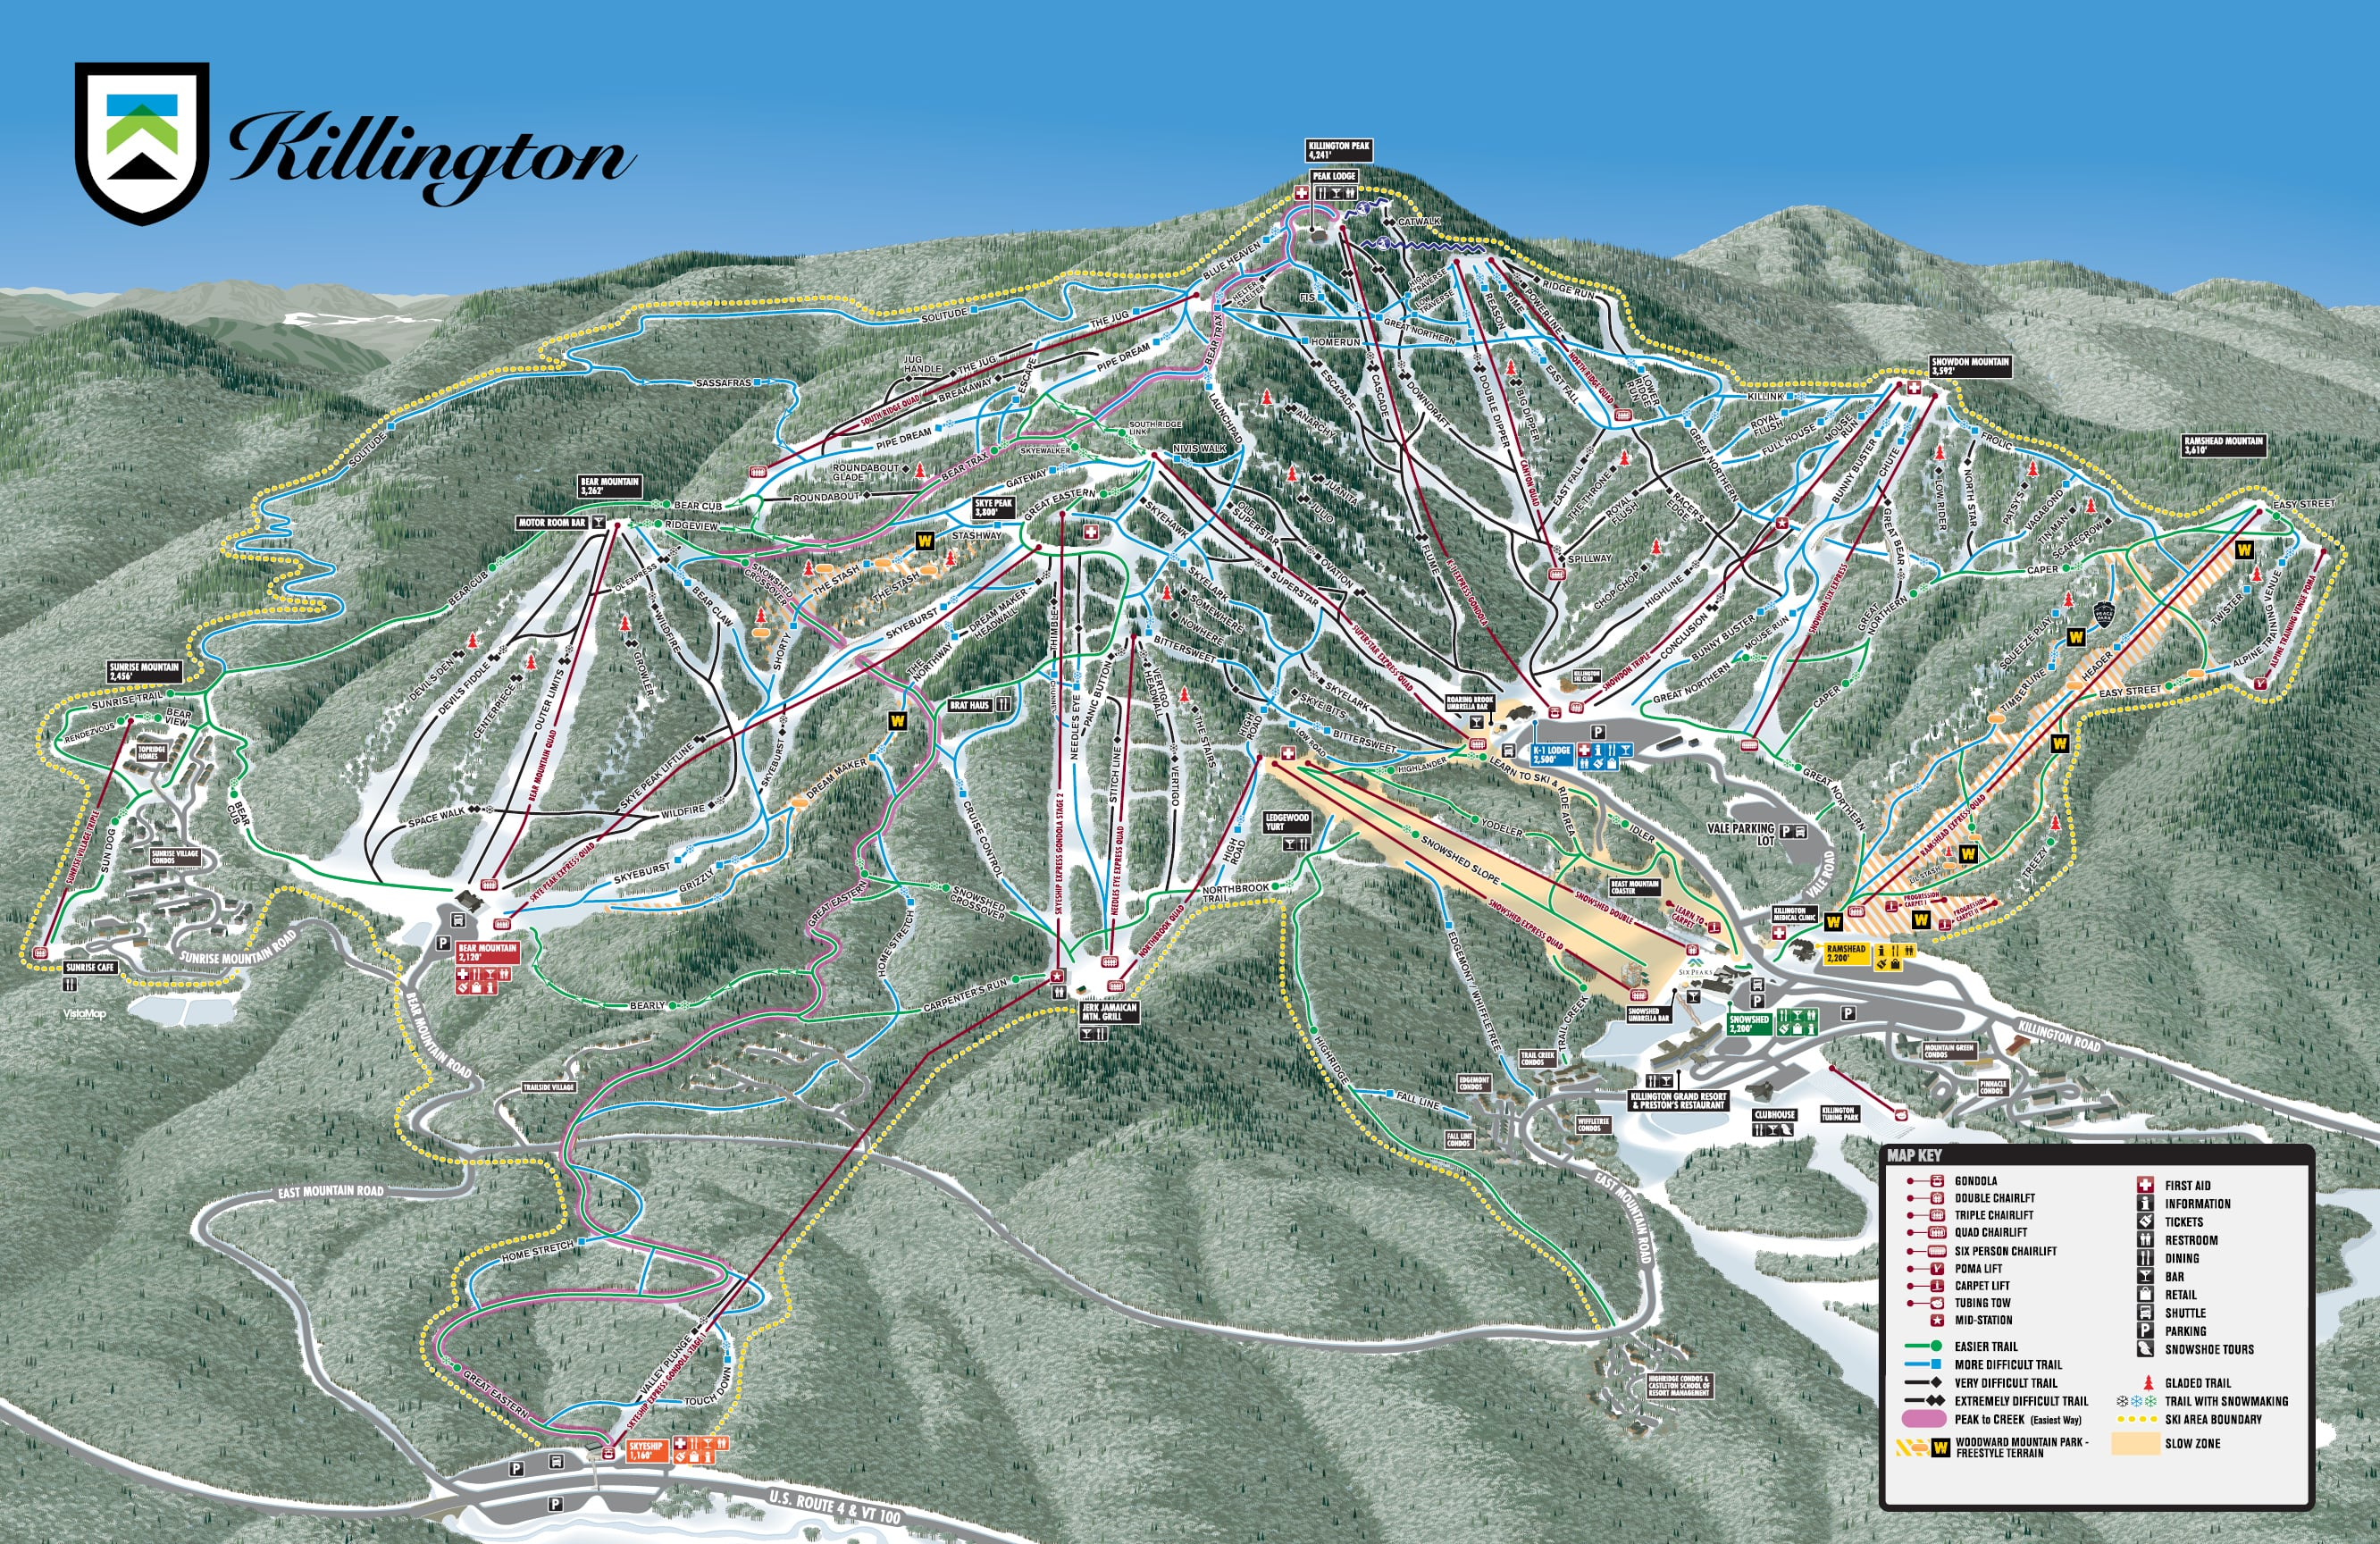 Killington Piste / Trail Map